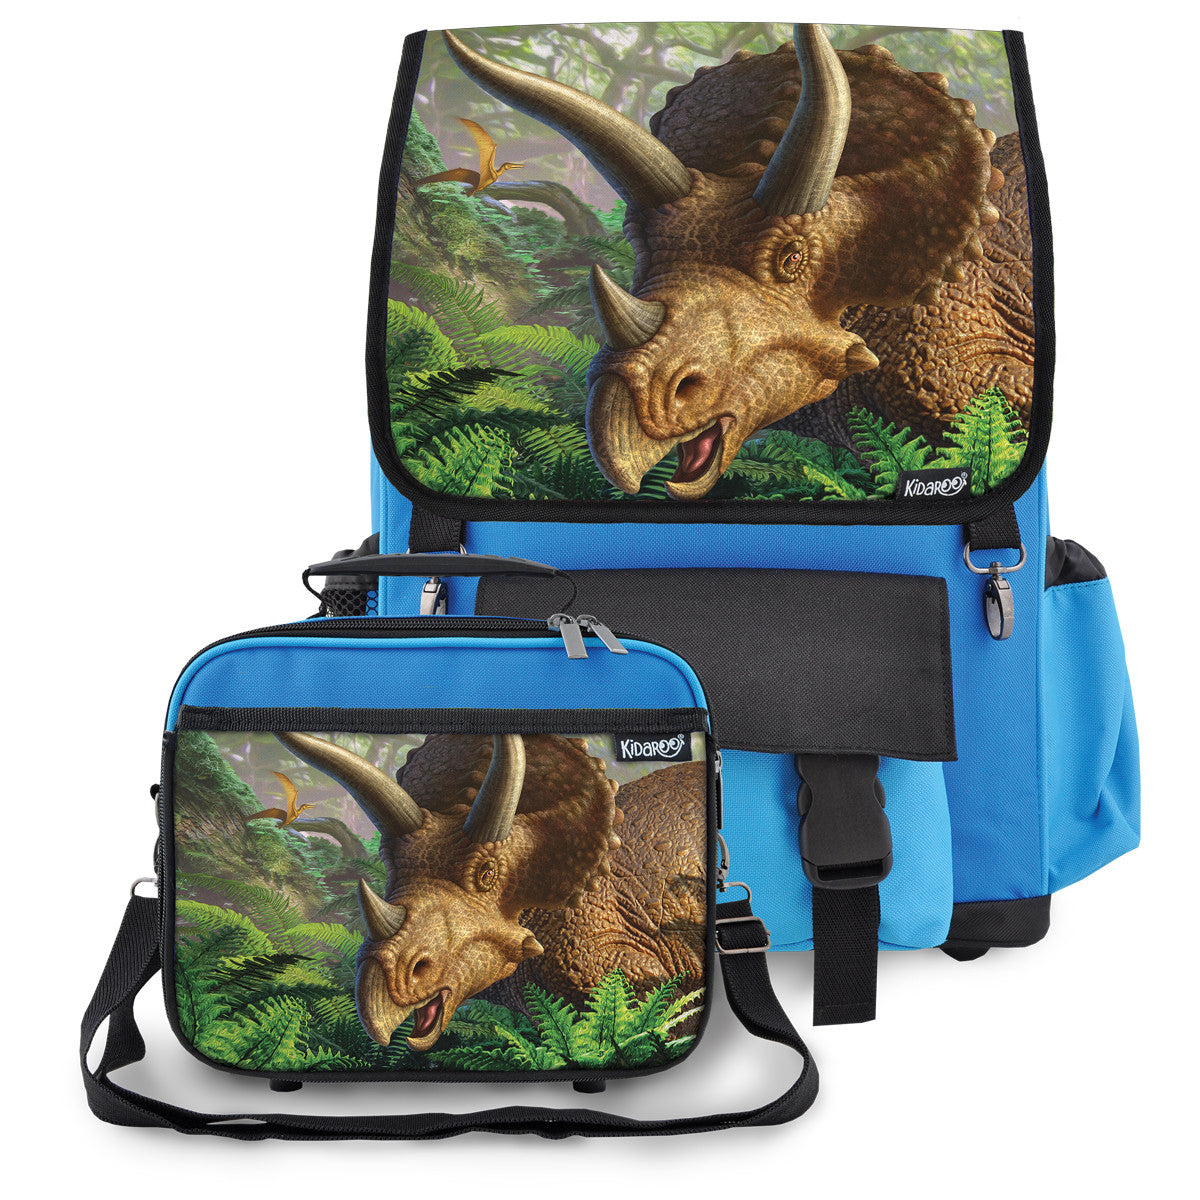 Kidaroo Blue Triceratops Dinosaur School Backpack & Lunchbox Set for Boys, Girls, Kids